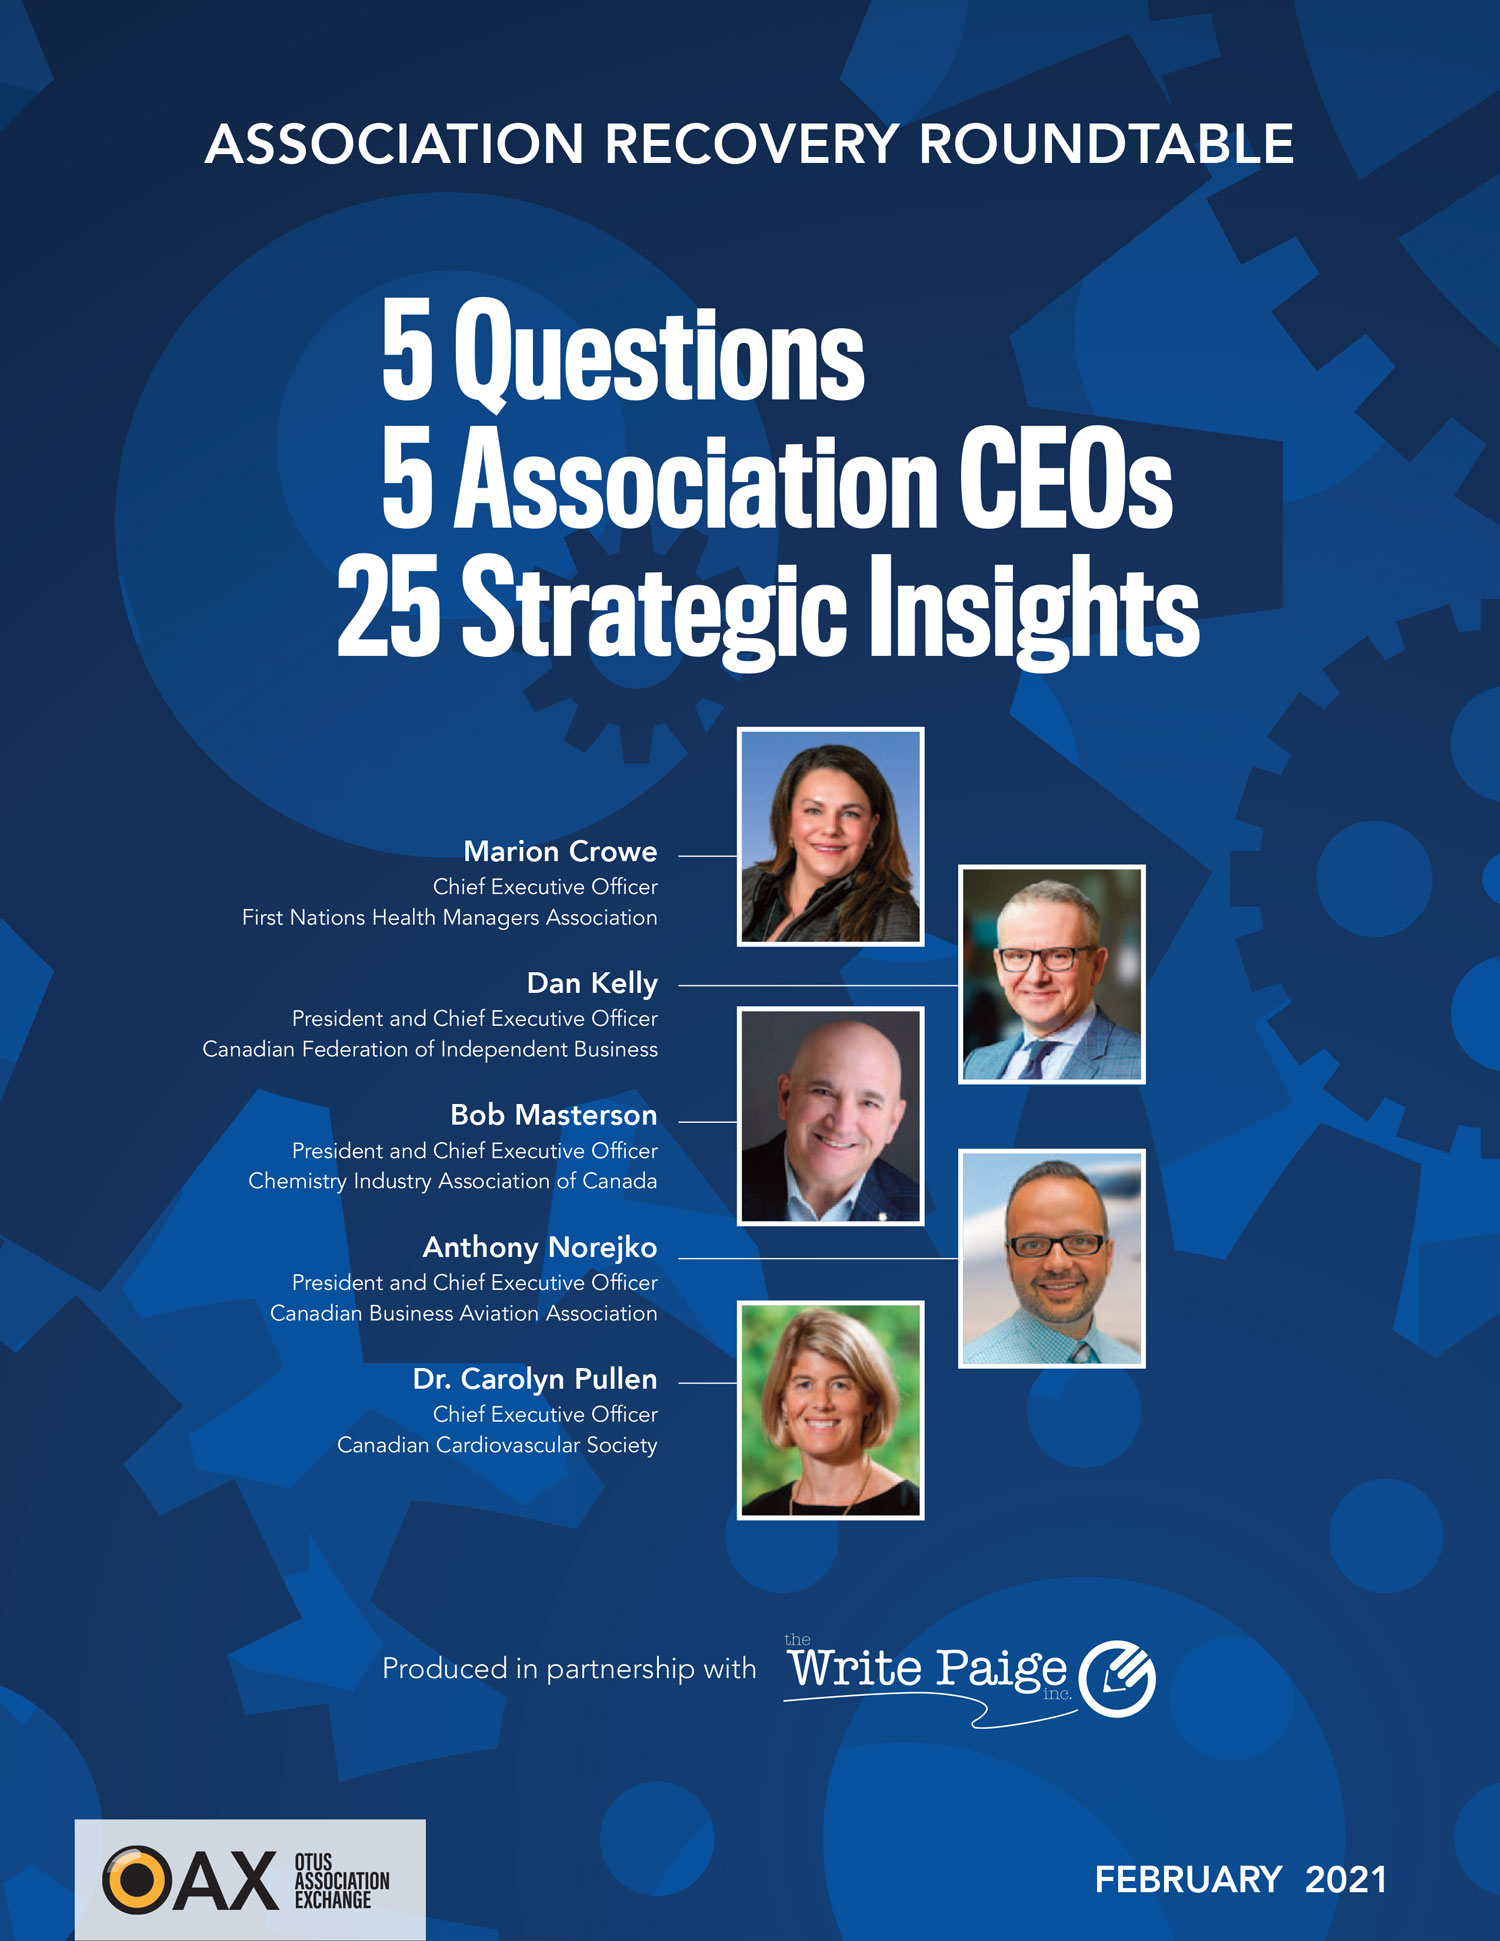 Association Recovery Roundtable: 5 questions, 5 association CEOs, 25 strategic insights with Marion Crowe, Dan Kelly, Bob Masterson, Anthony Norejko, Dr. Carolyn Pullen